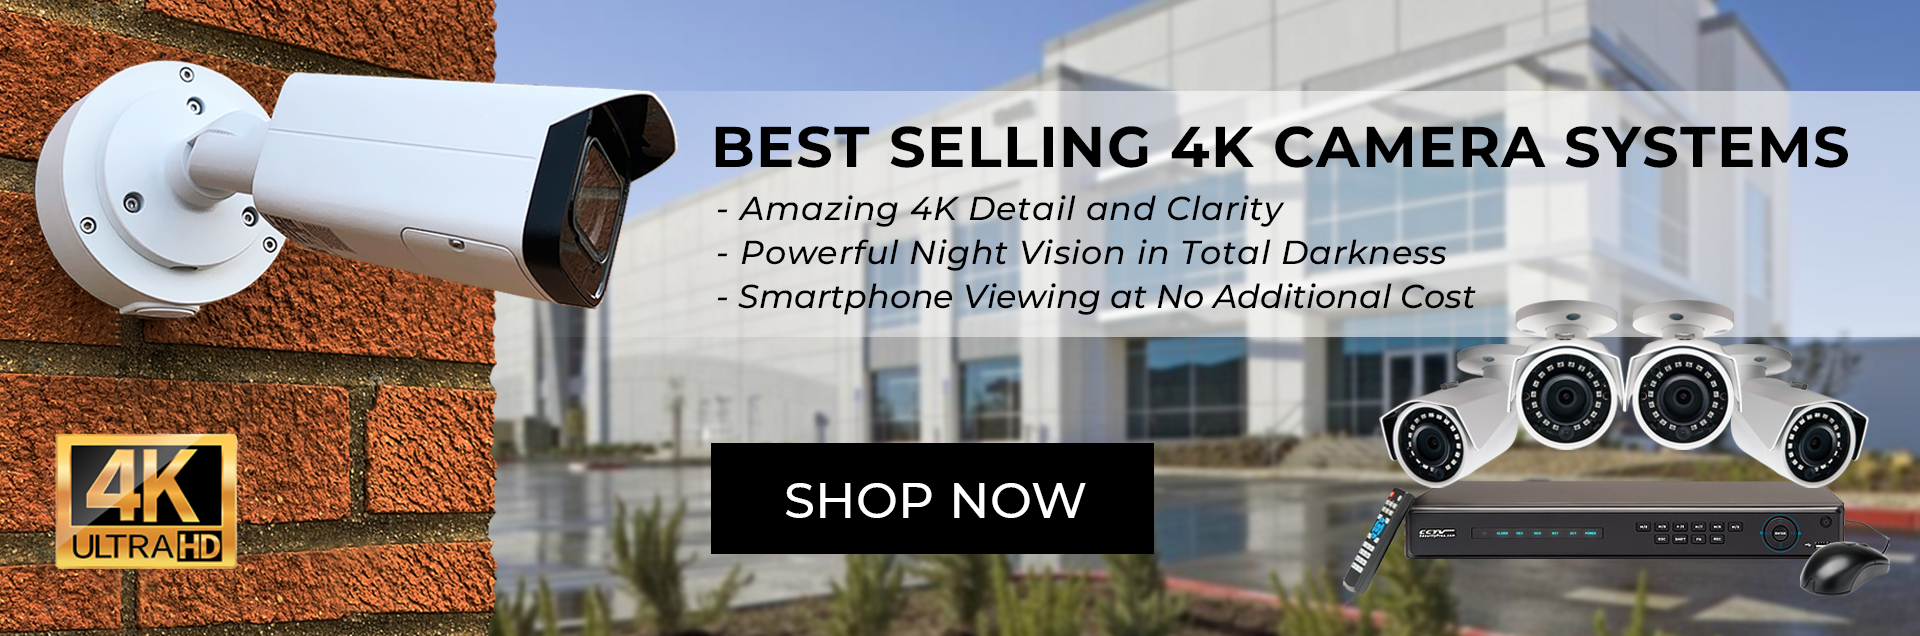 4k camera system - New for 2021